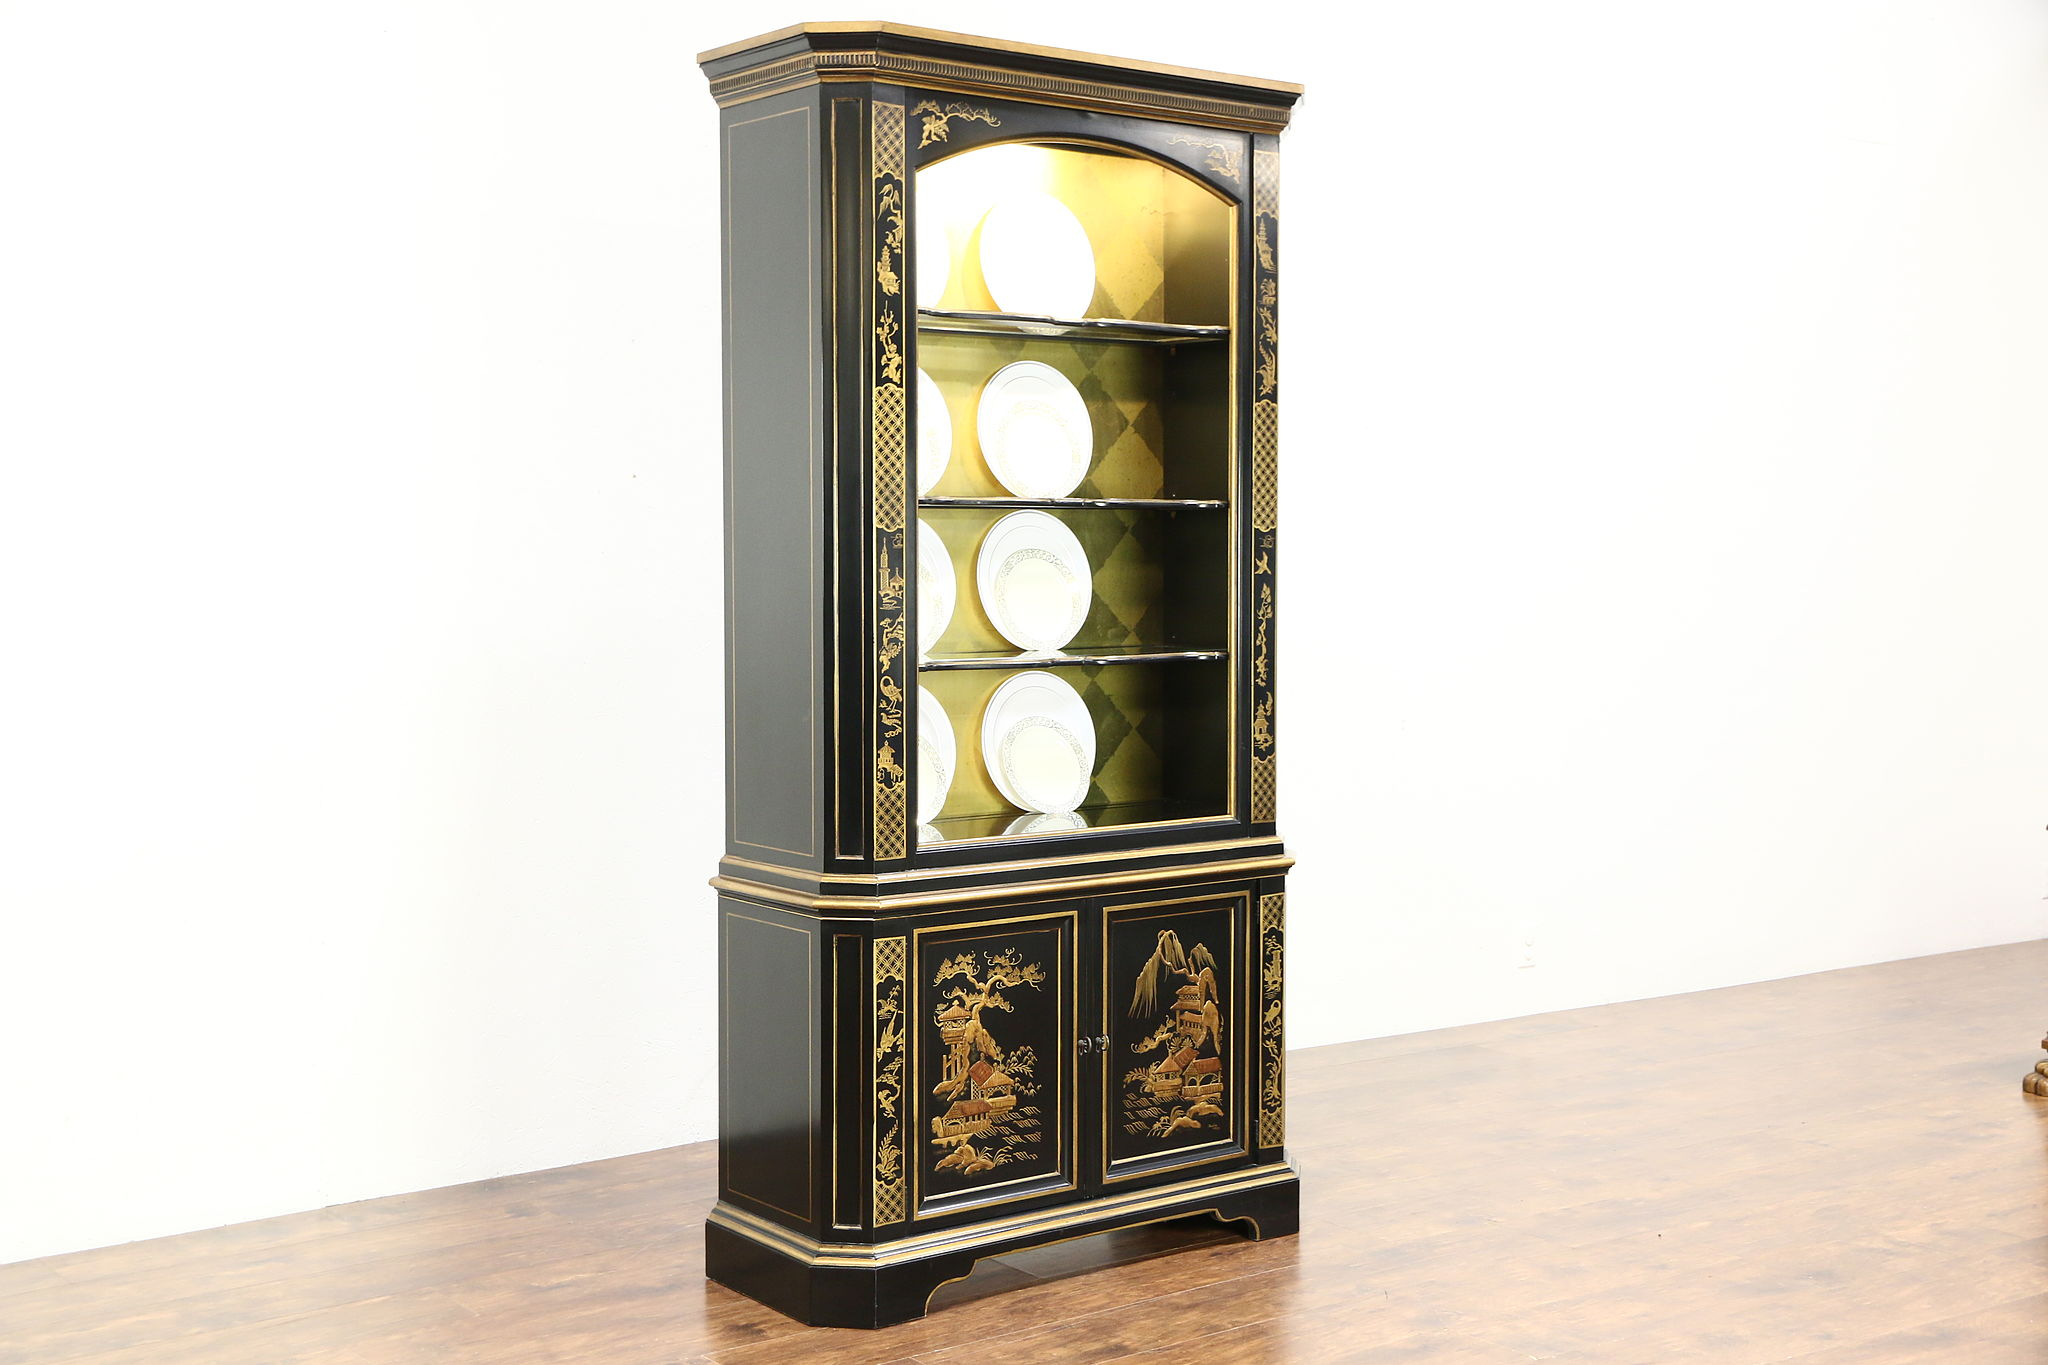 Attirant Black Lacquer Chinoiserie Vintage Curio Or China Display Cabinet Signed  Heritage ...